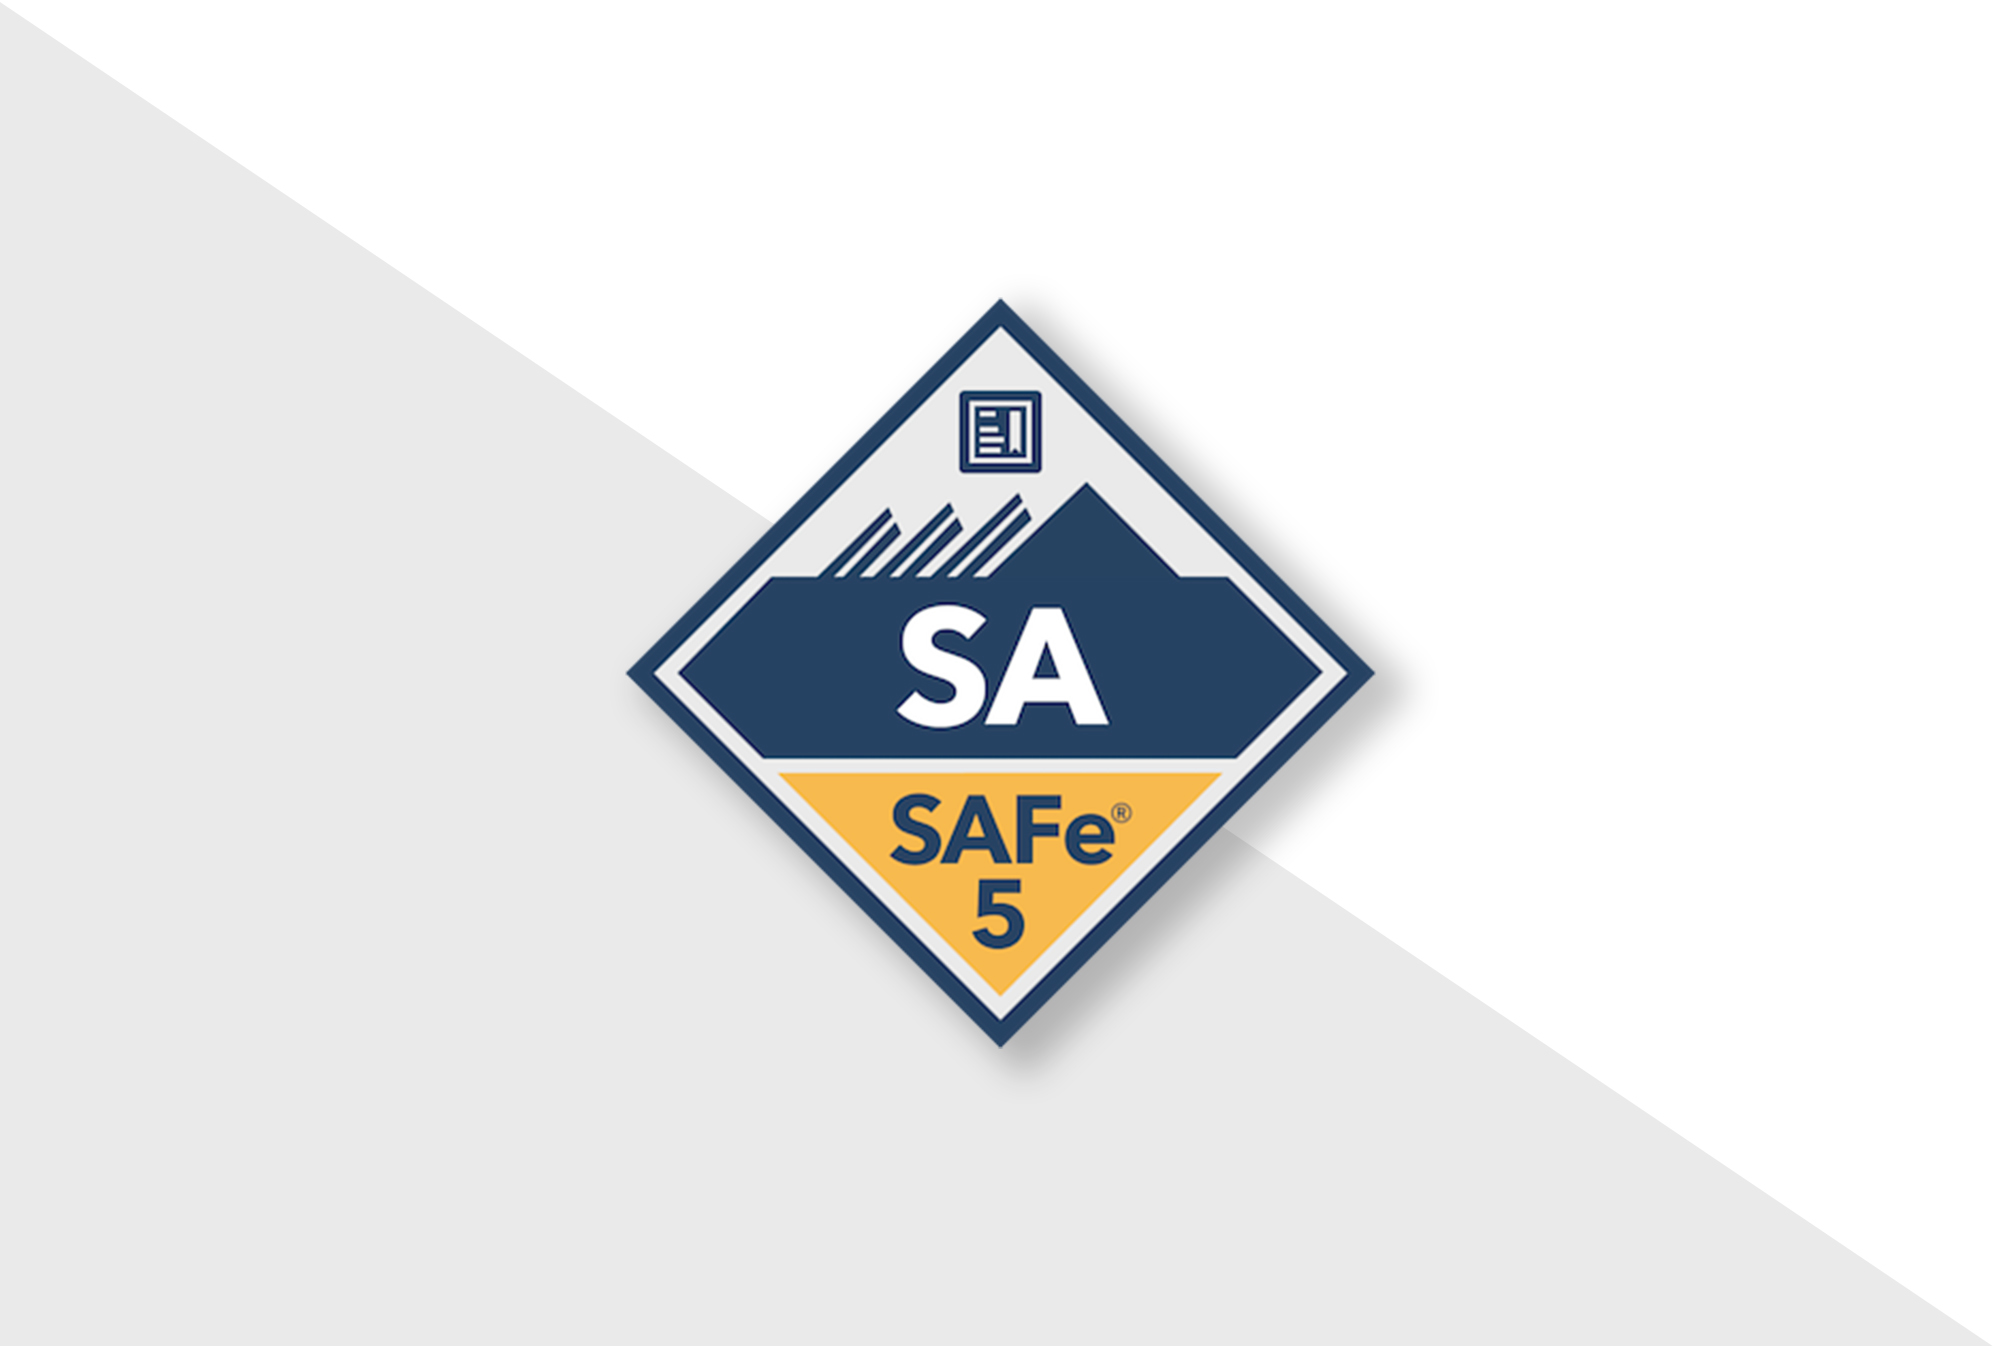 What's new and different in Safe 5.0